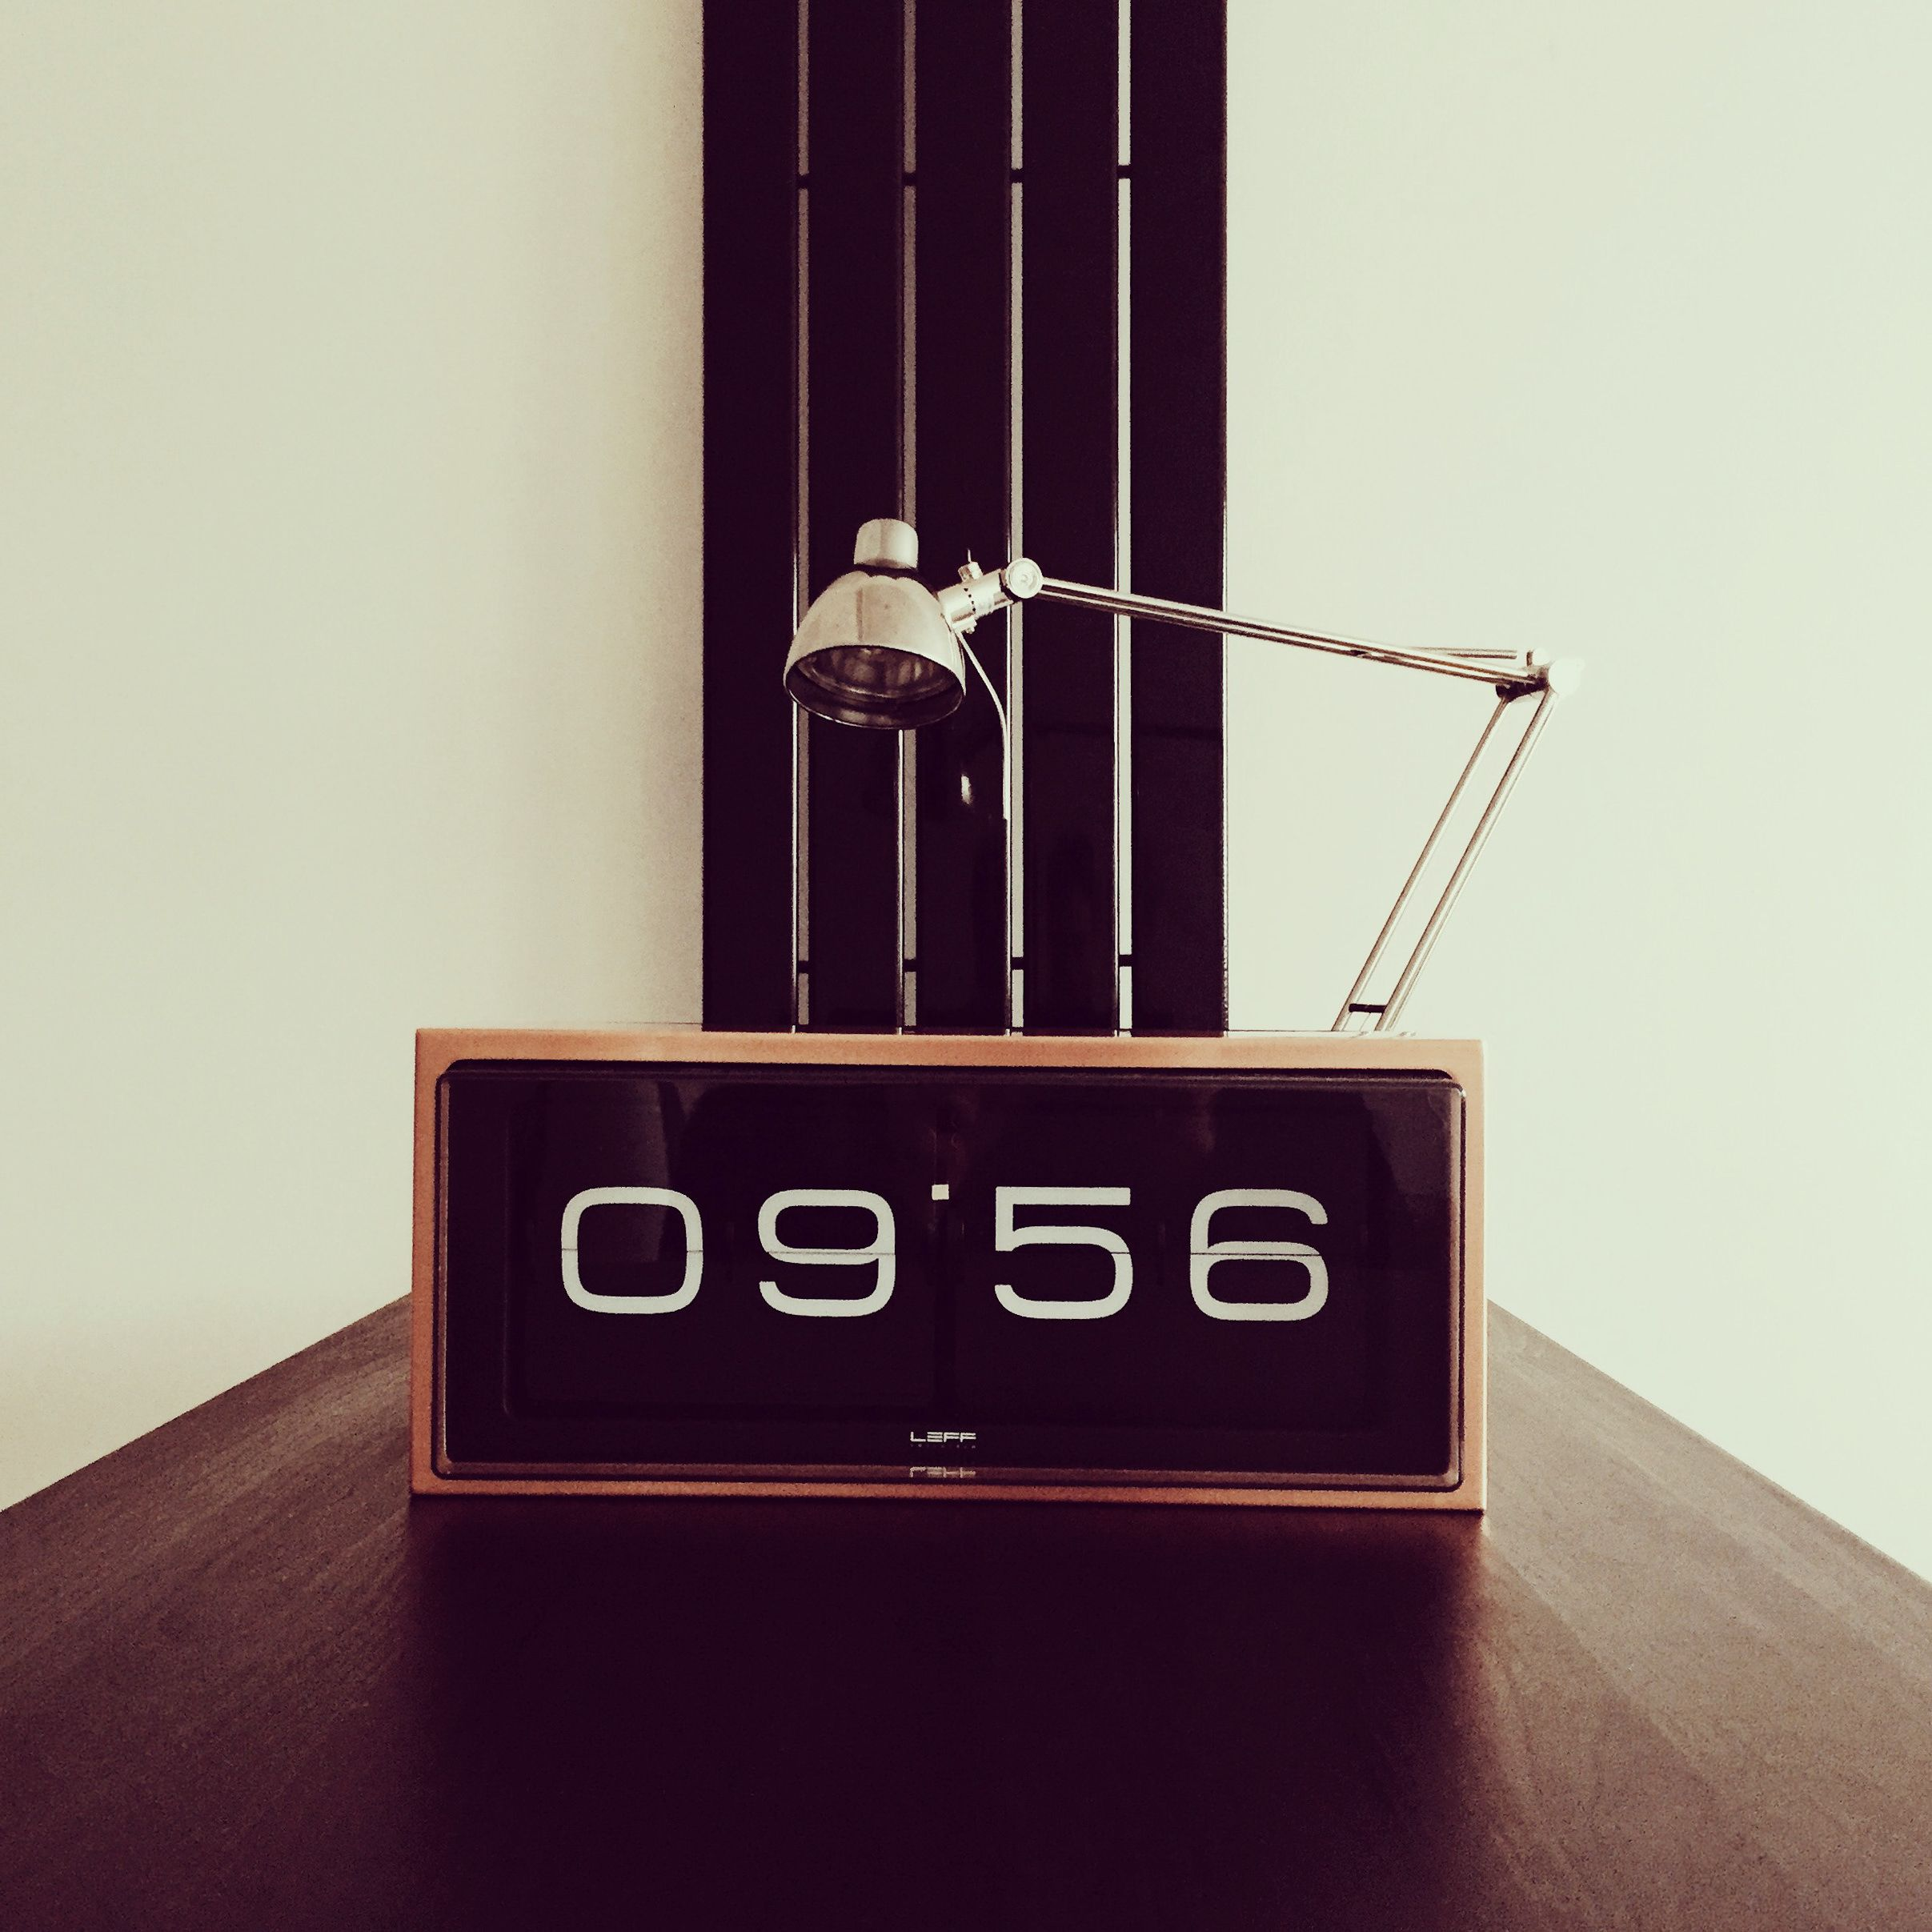 LEFF Amsterdam Brick Flip Clock In Copper   Instagram.com/iam_lowe Images